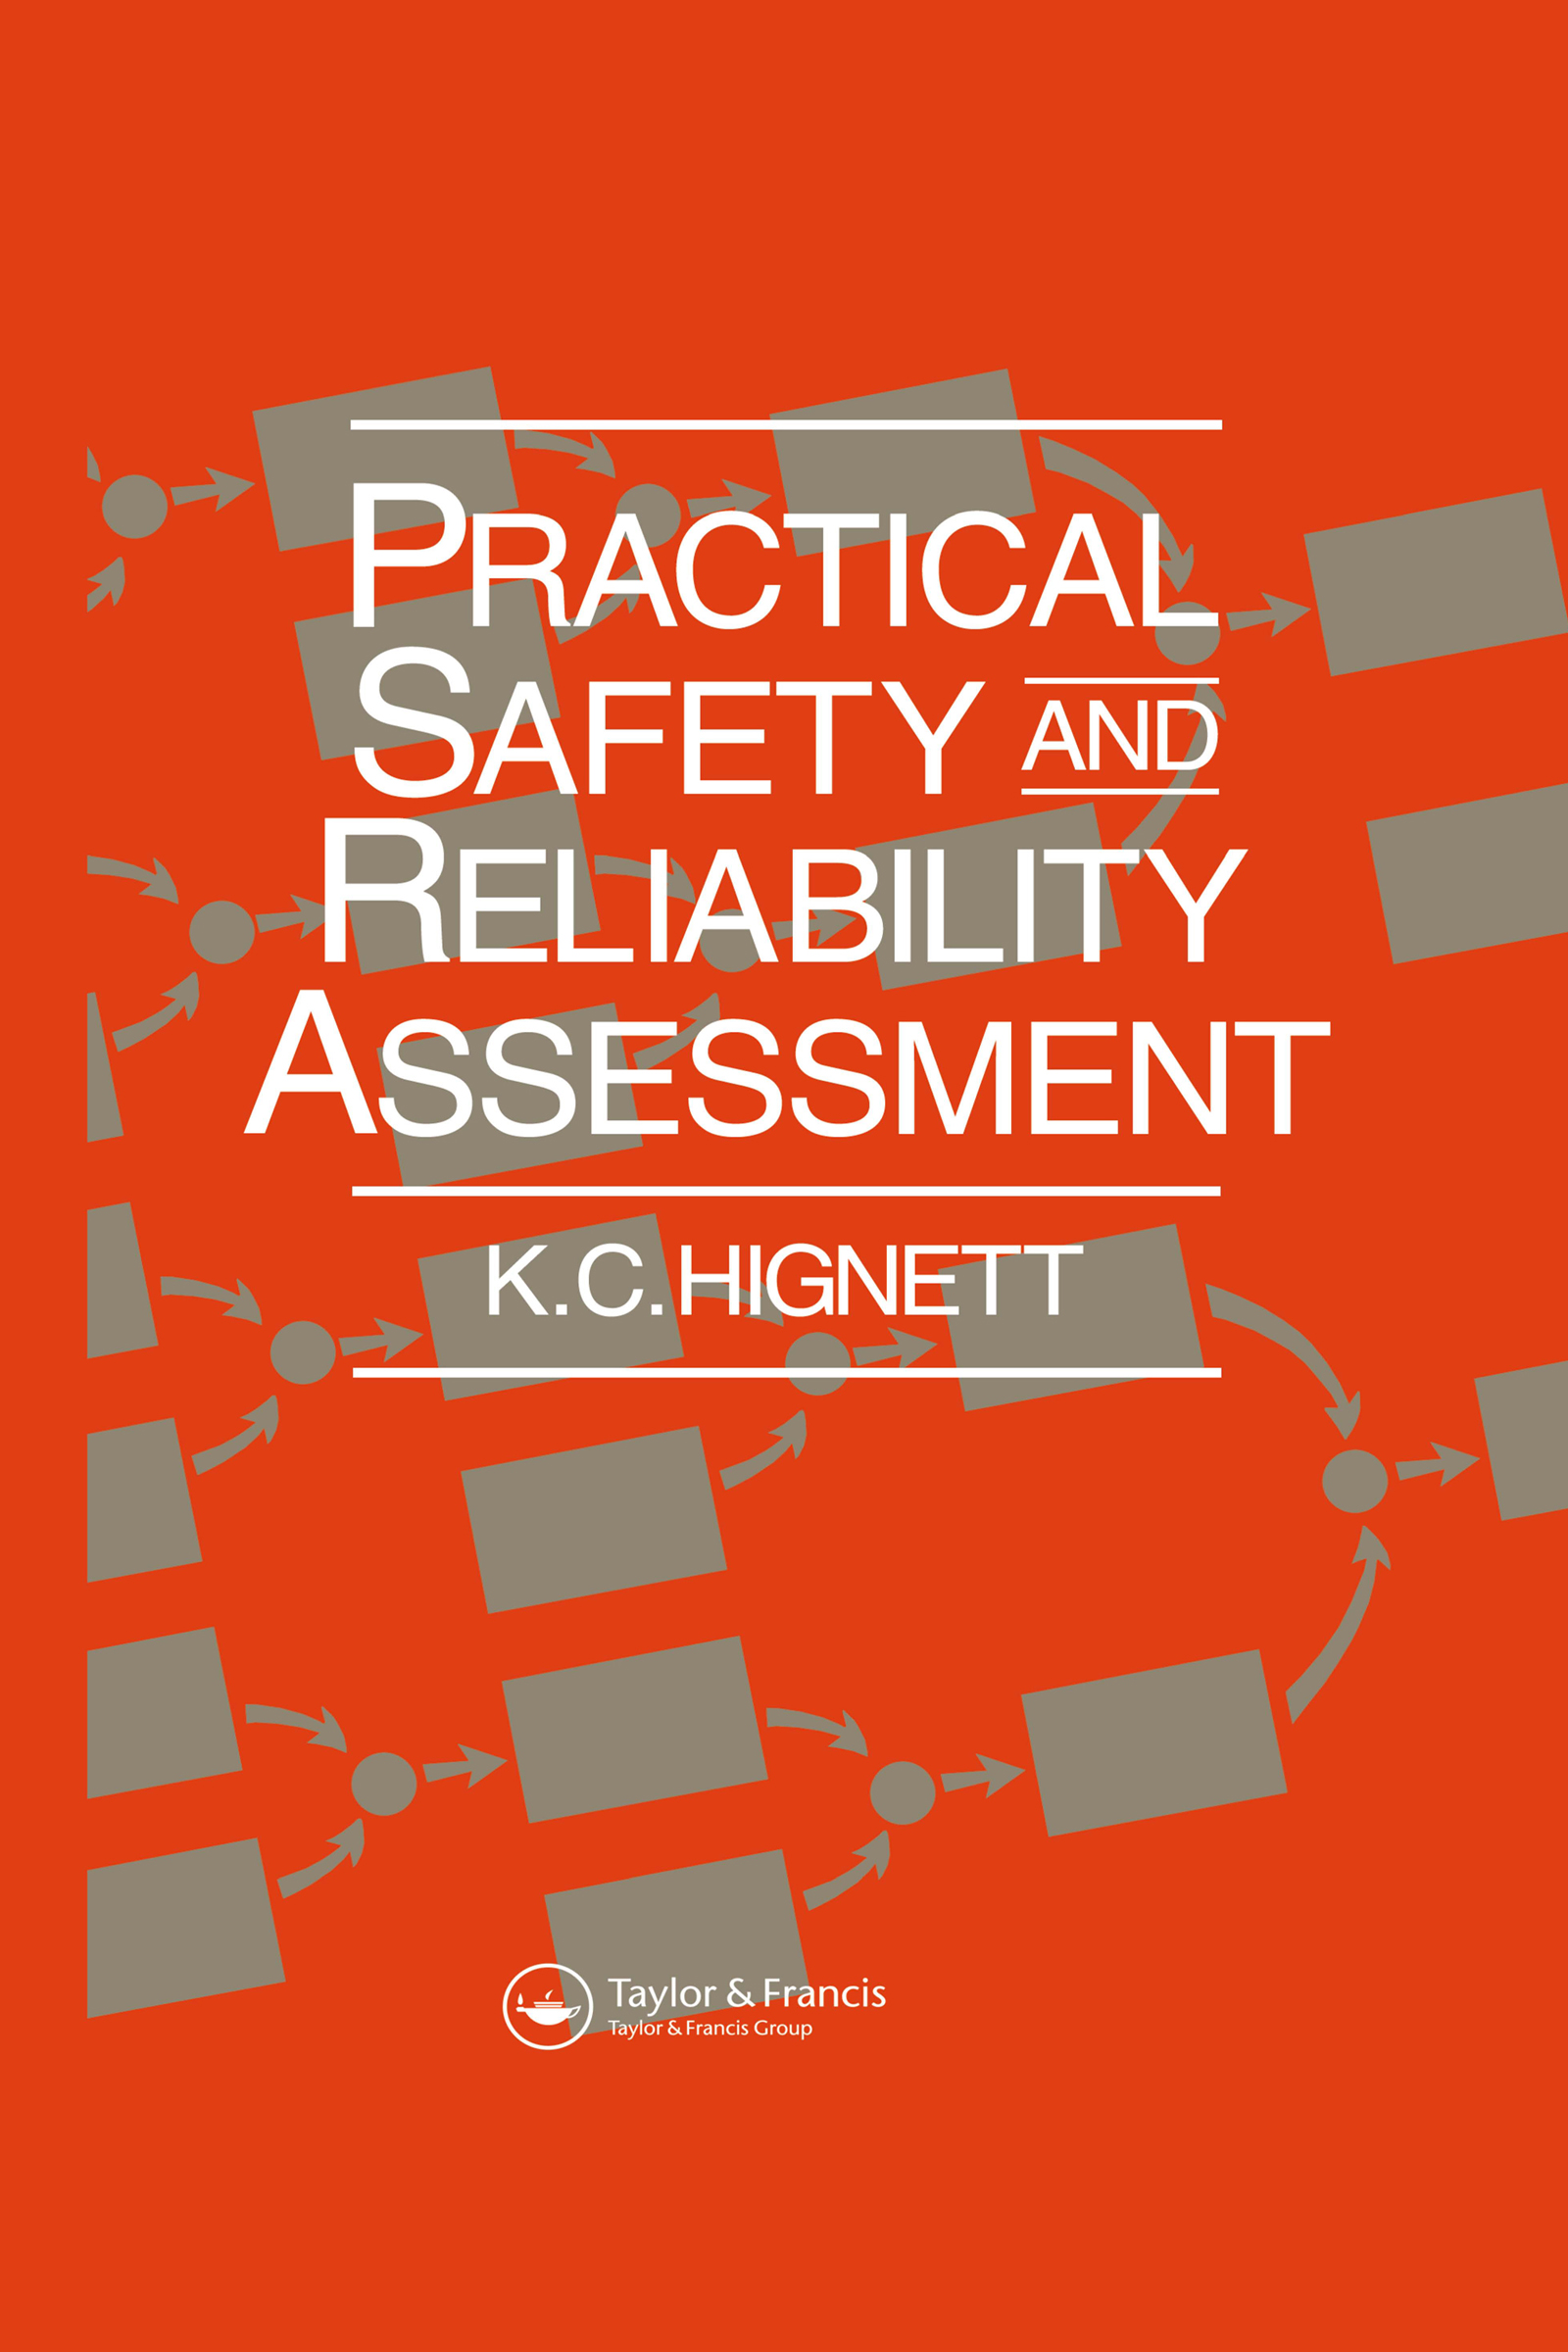 Practical Safety and Reliability Assessment